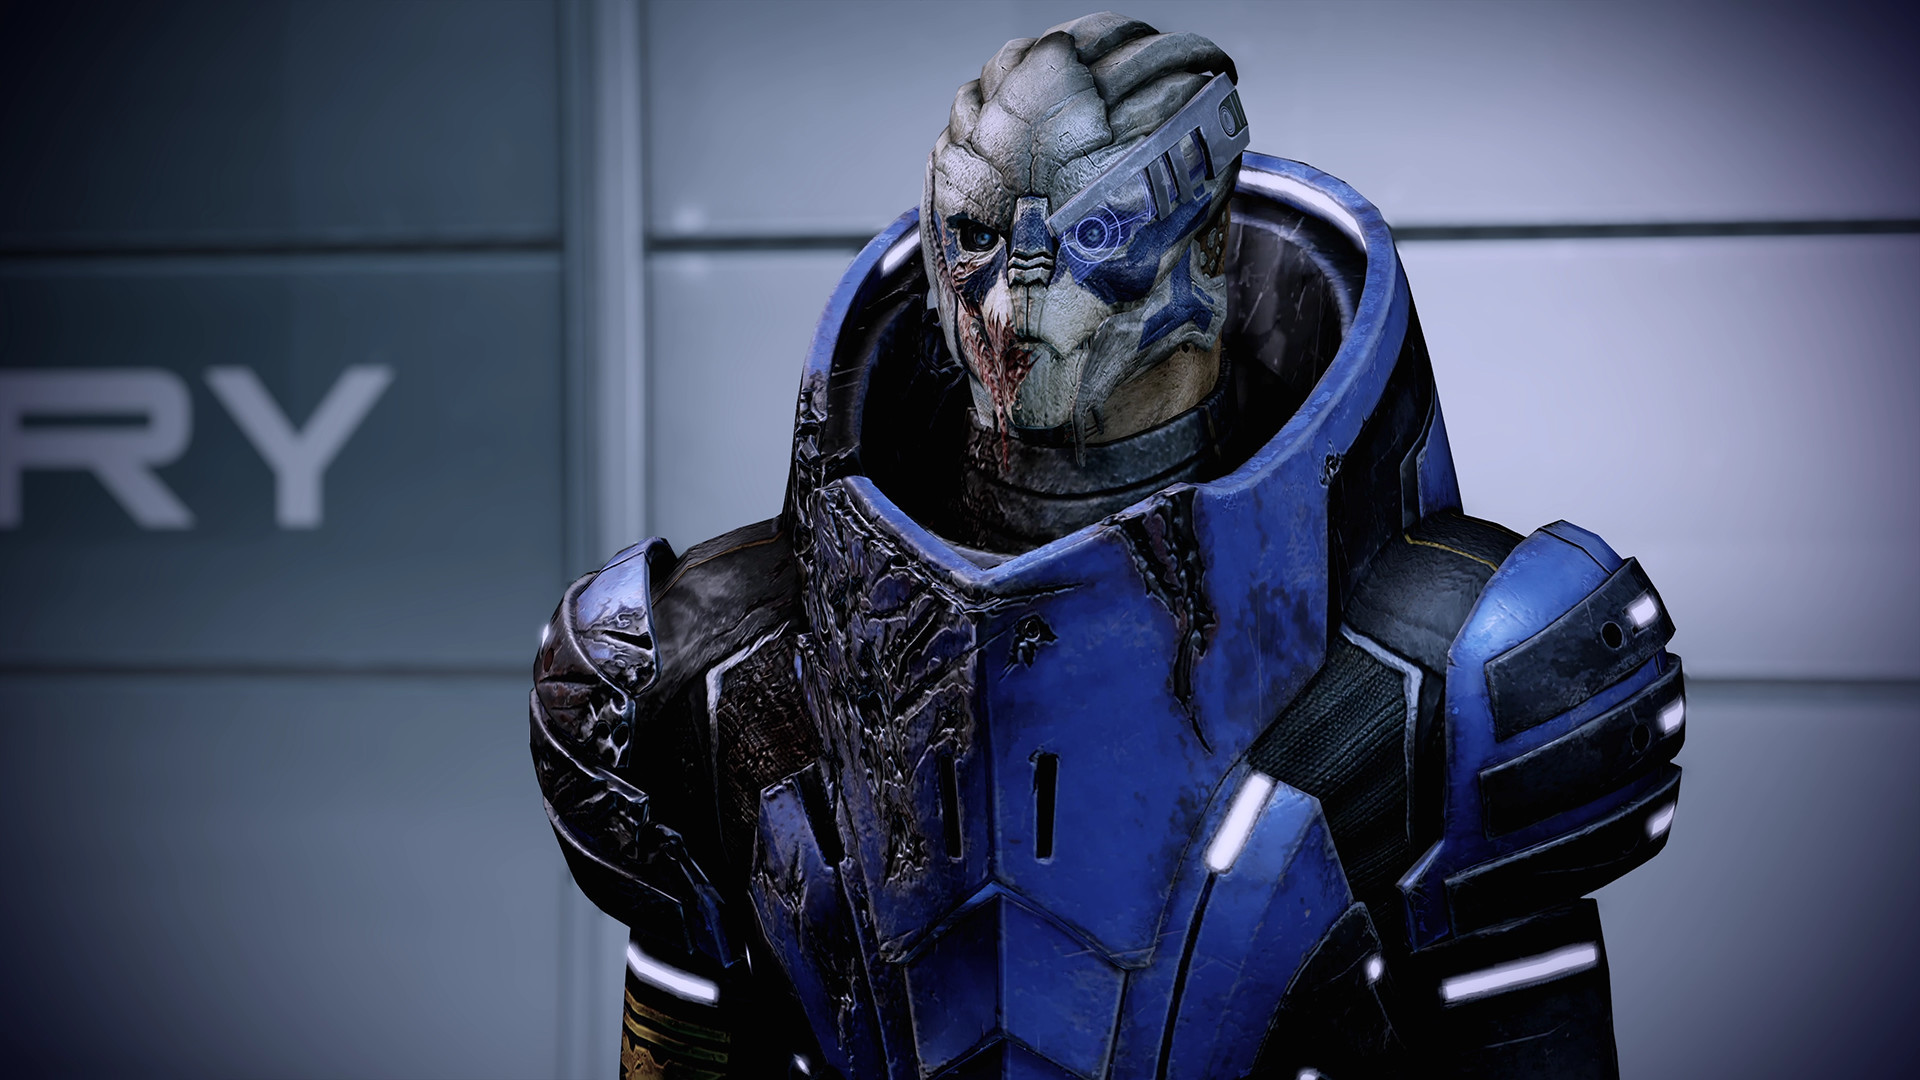 Mass Effect Legendary Edition causing crashes, players unhappy about some lackluster features